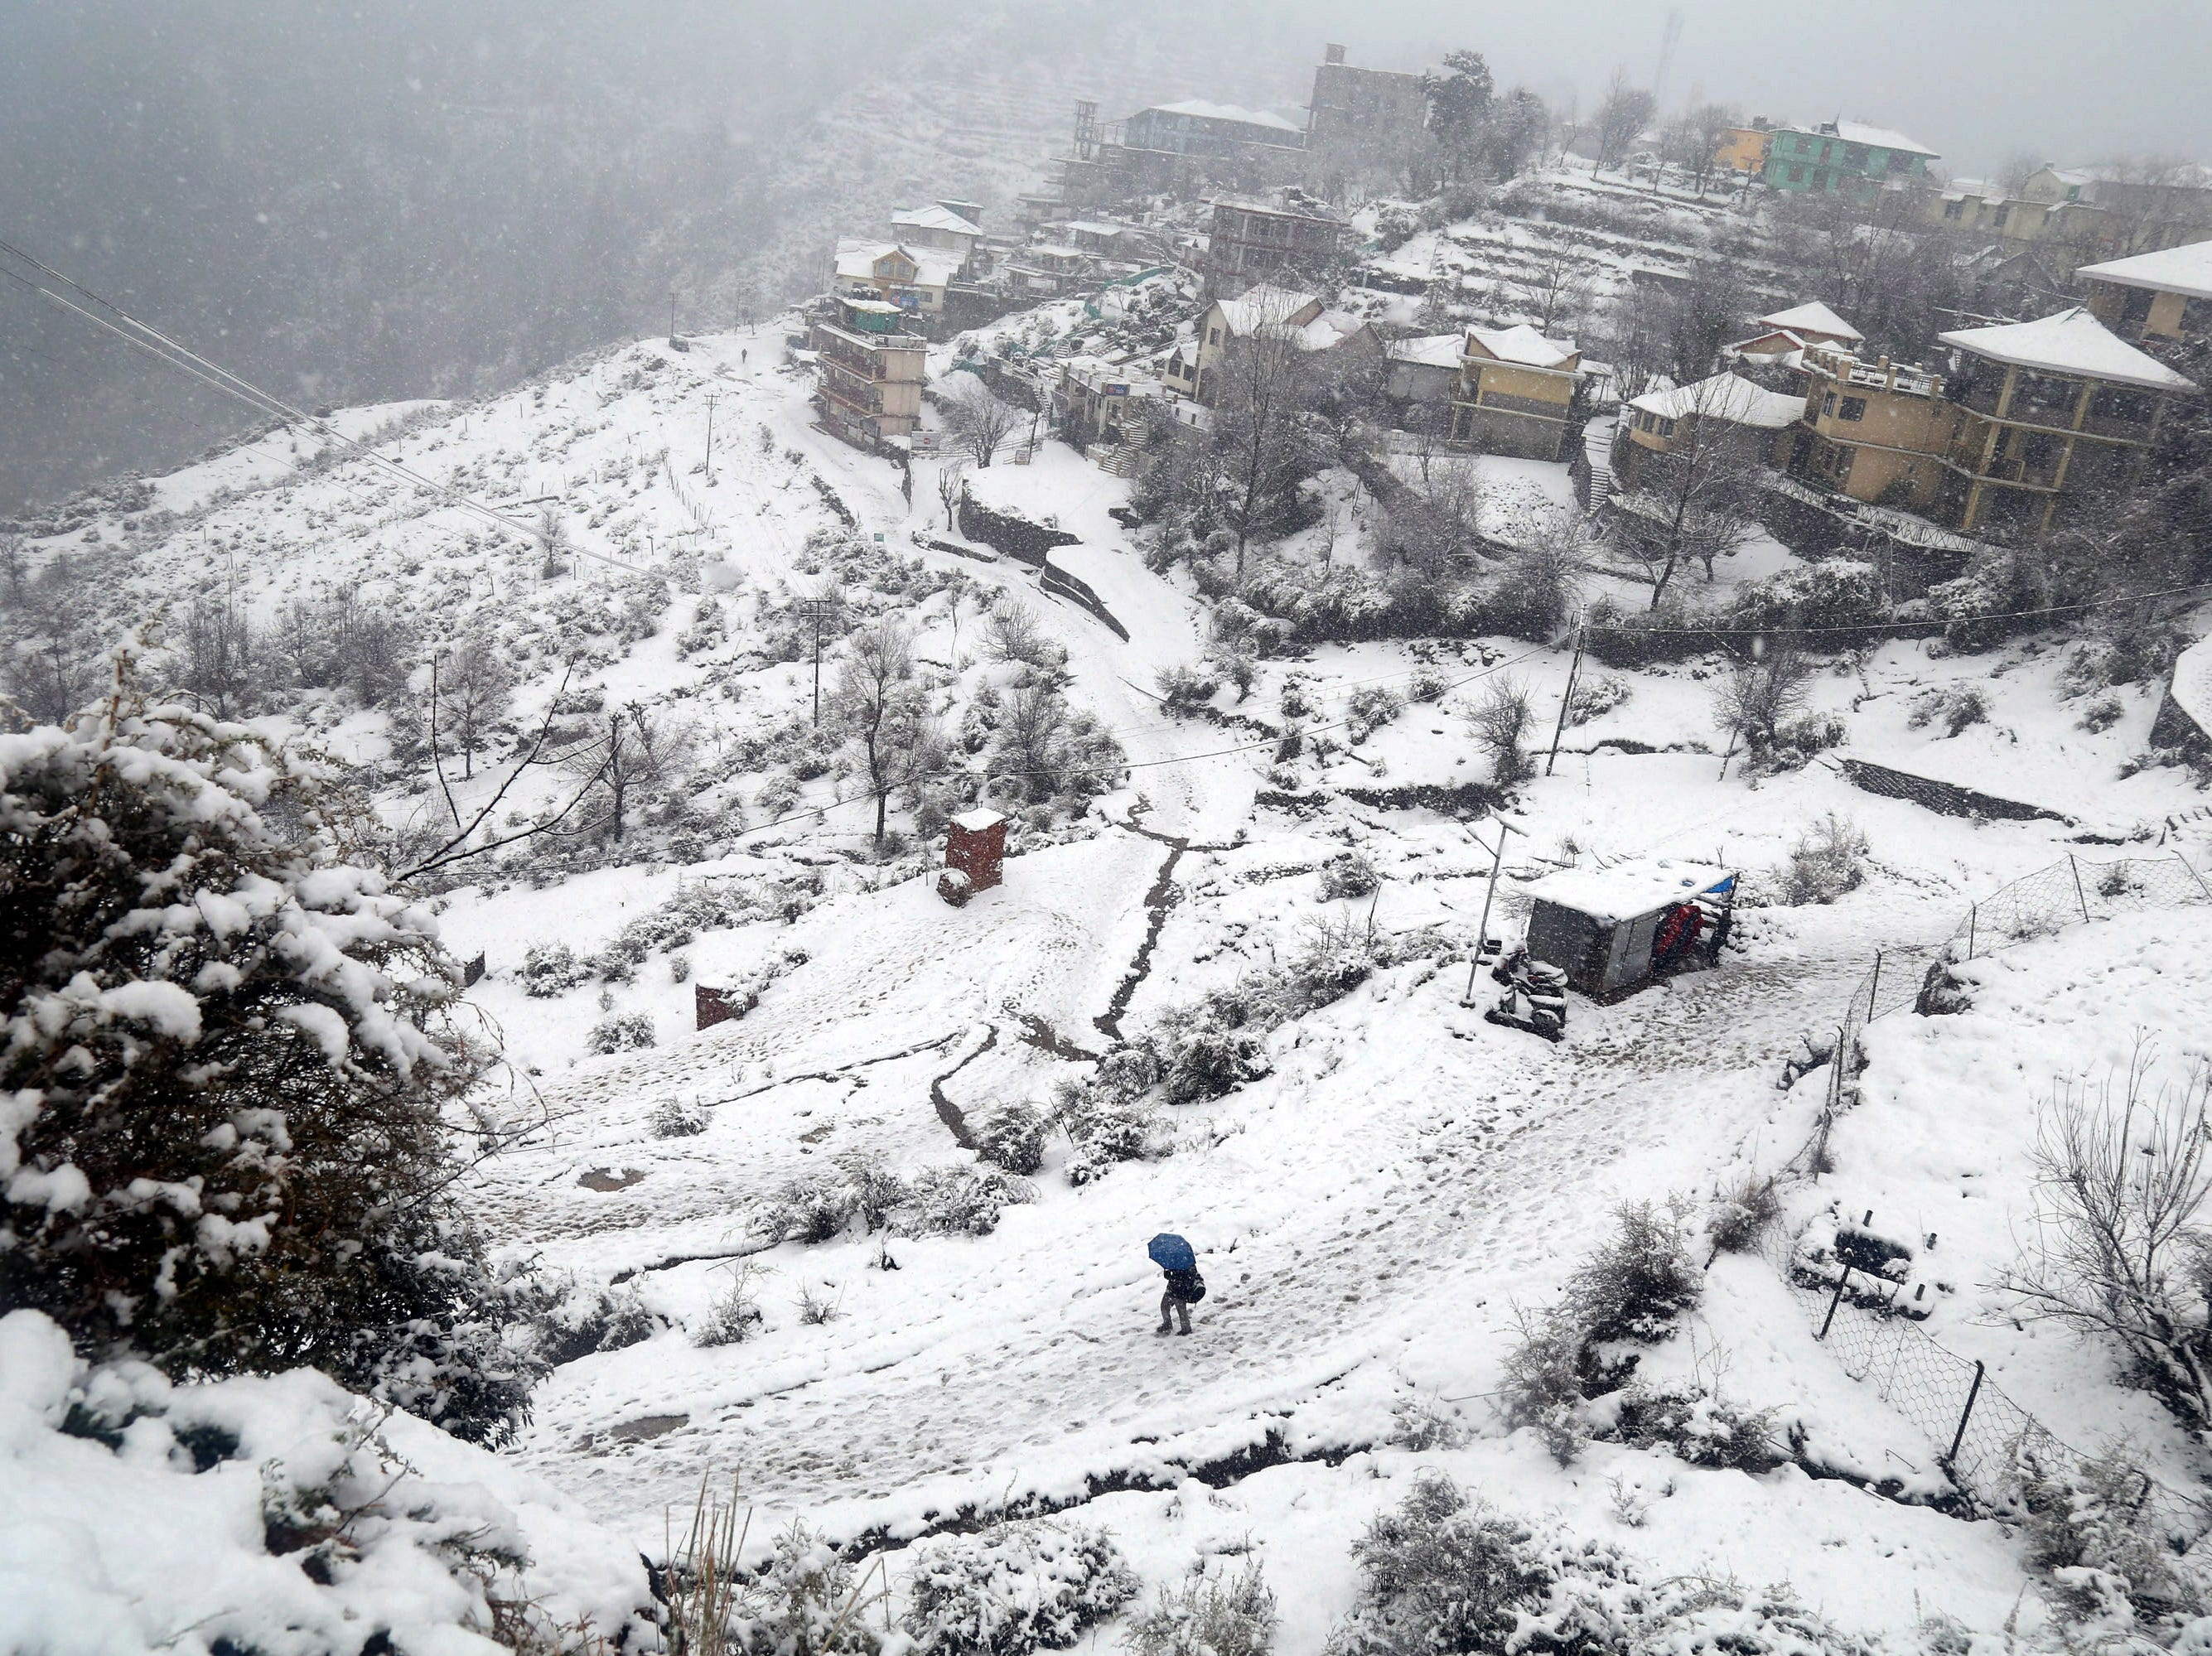 A person walks on snow after fresh snowfall at Naddi village near Dharamsala, India on Jan. 6, 2019. Intense cold wave conditions prevail in northern India as temperatures dipped at several places in the region with districts of Shimla, Kullu, Manali, Kinnaur, Chamba, and Pangi-Bharmaur of Himachal Pradesh receiving snowfall.